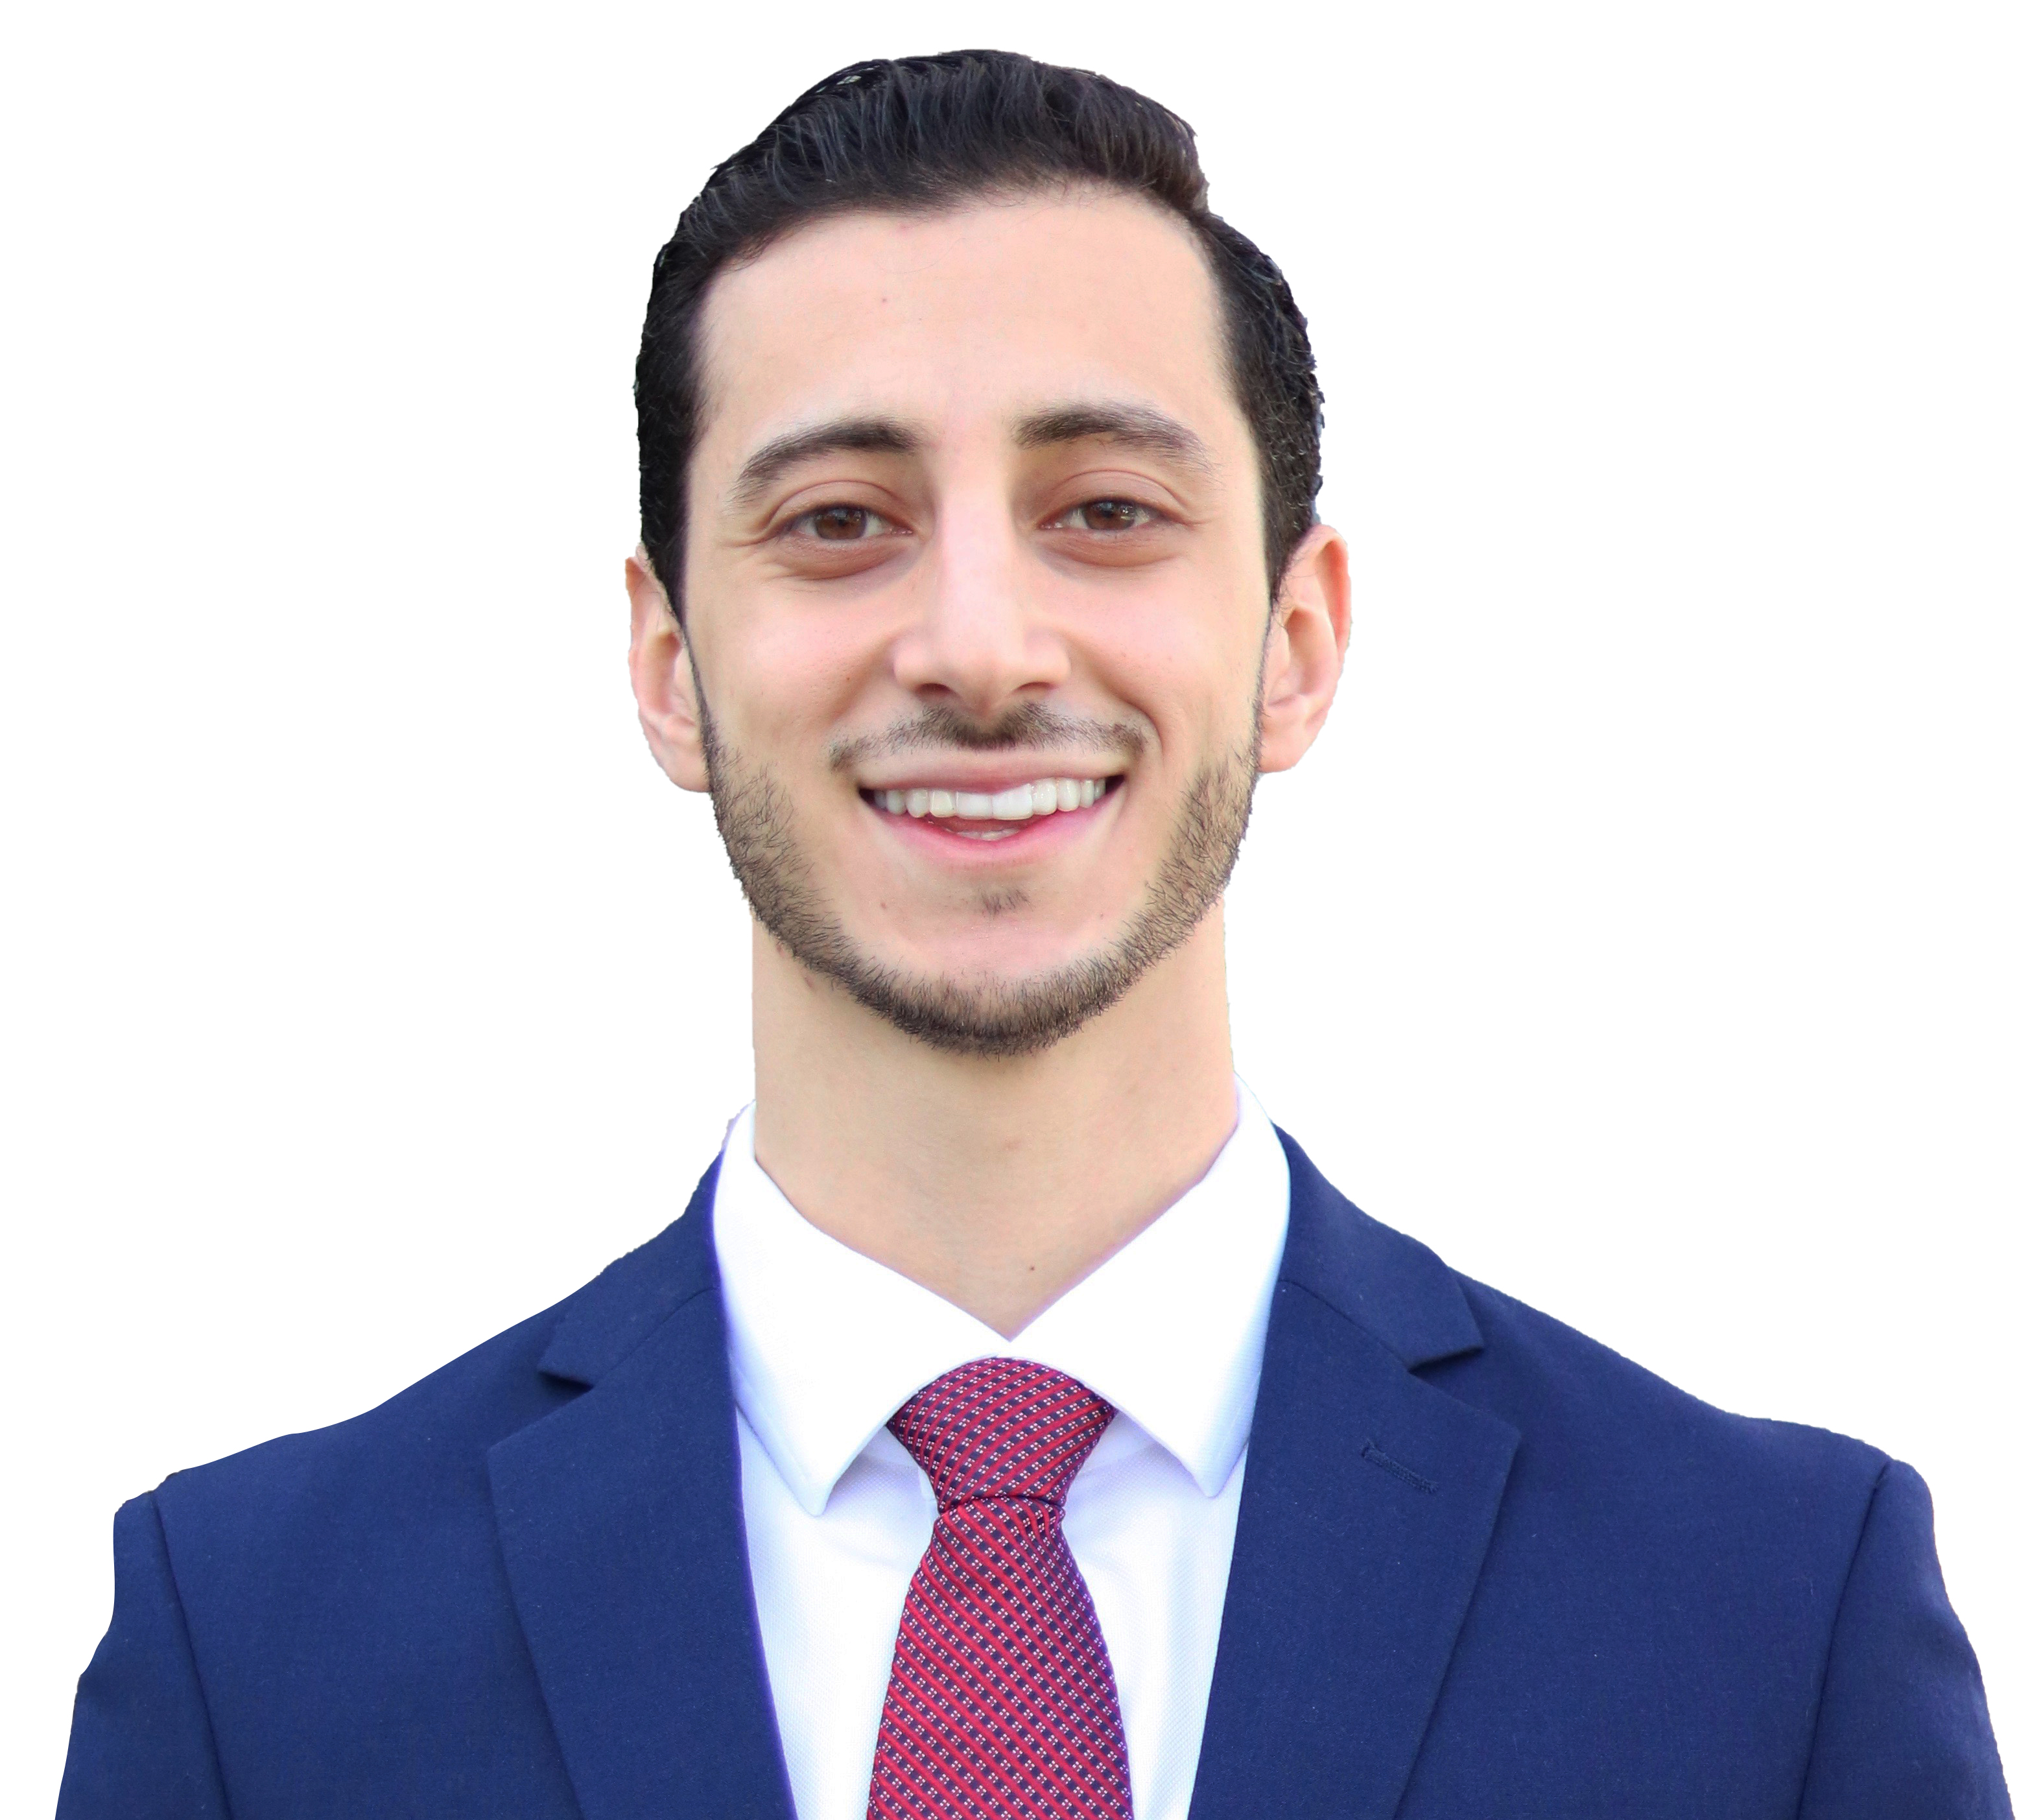 Mohammad Hijazi, M.B.A. : Programs Manager